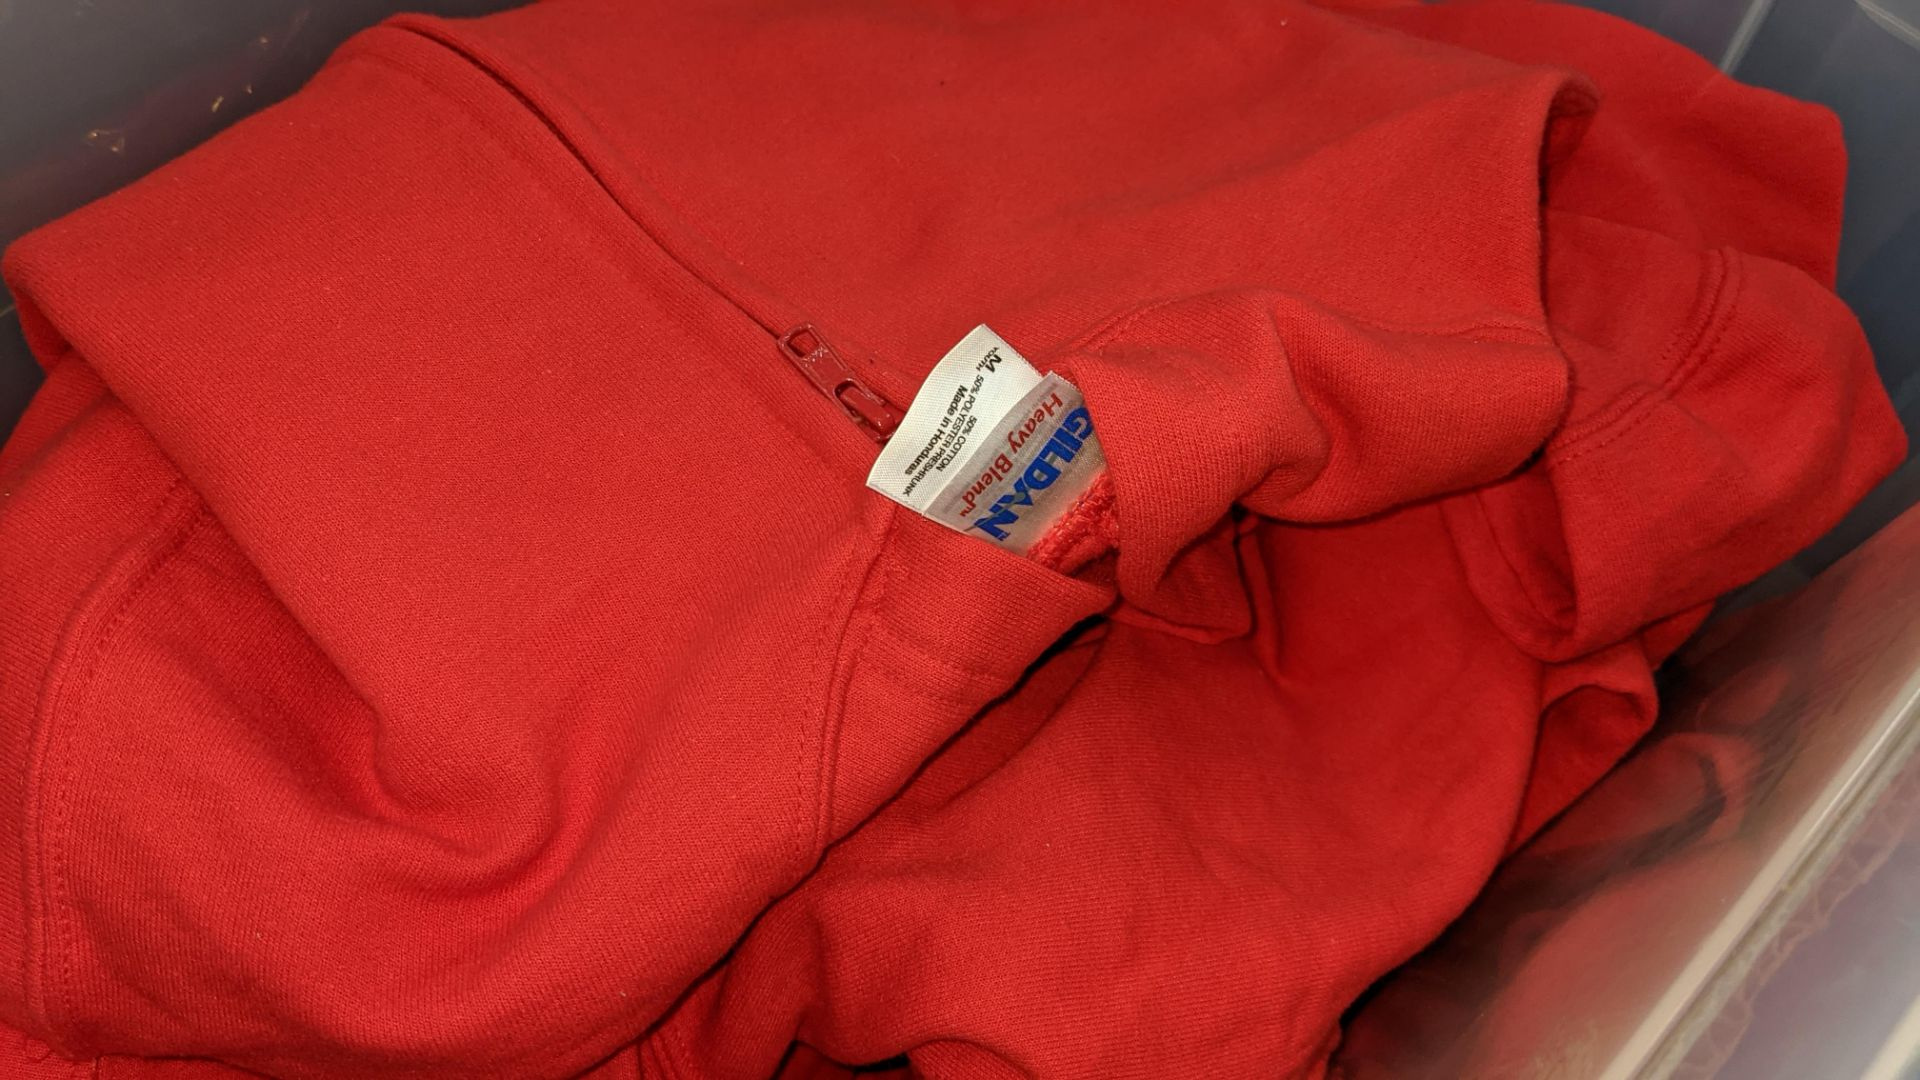 Approx 7 off children's zip up red hooded tops - the contents of 1 large crate. NB crate excluded - Image 3 of 4